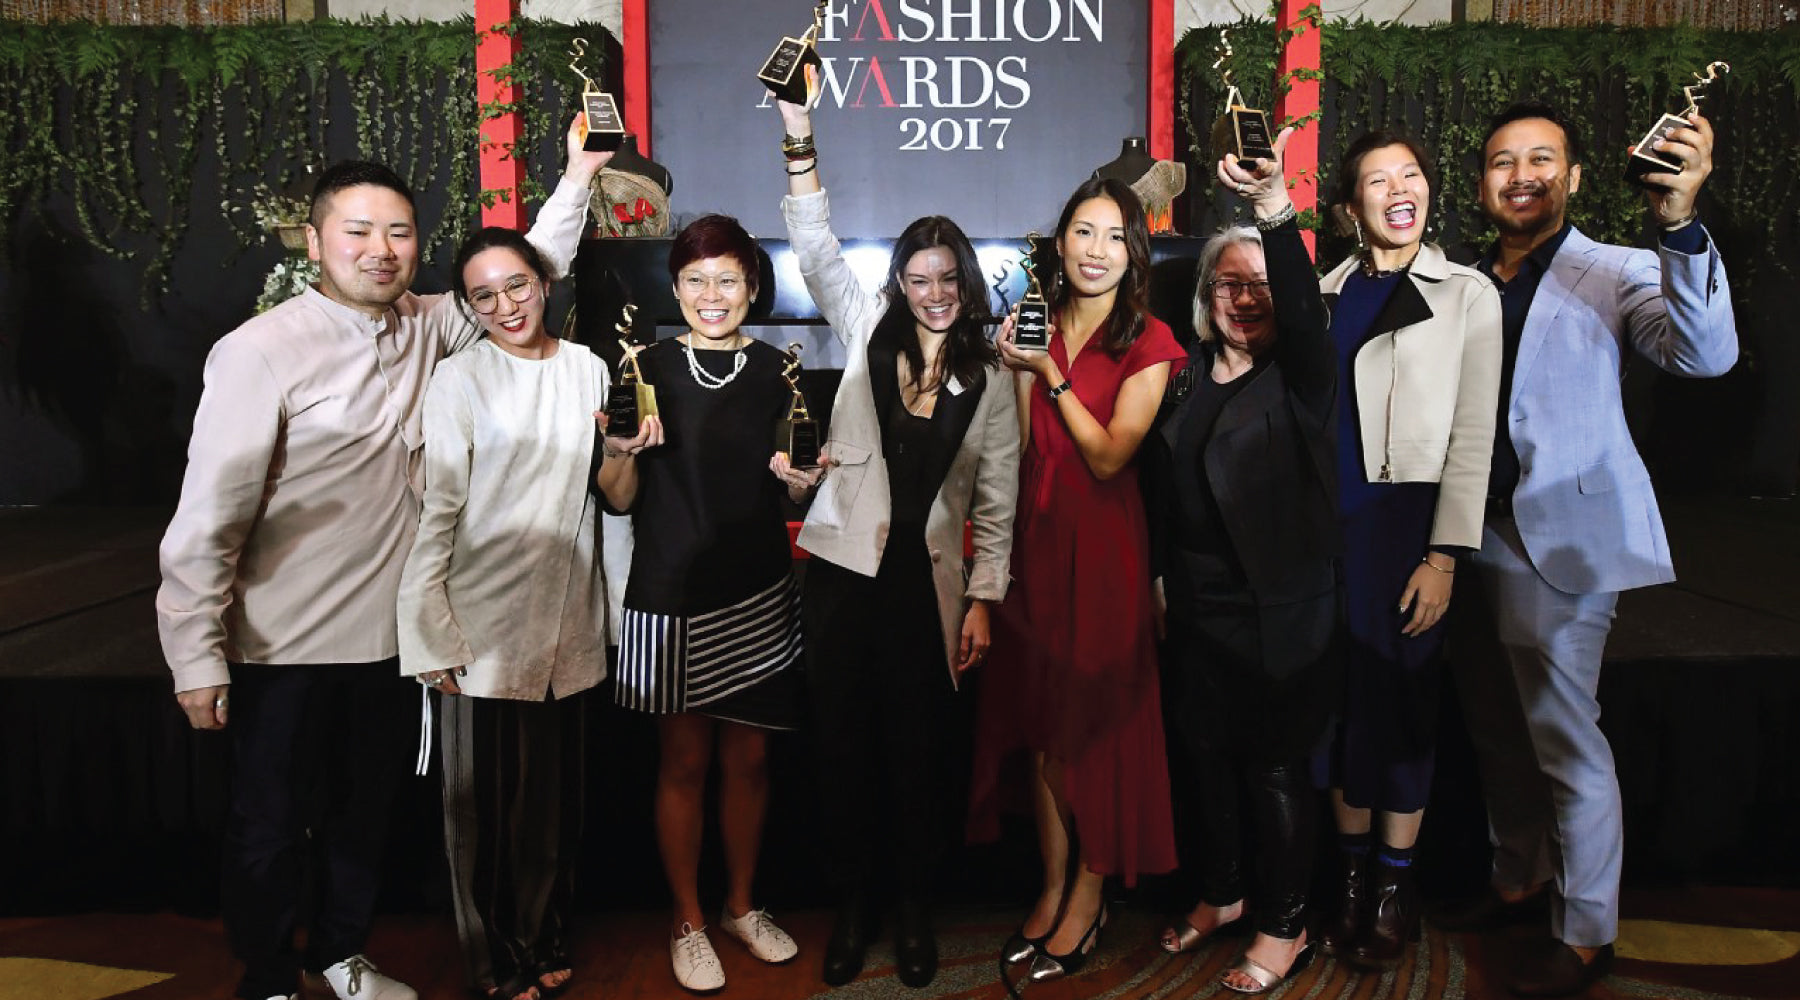 27th Nov | Local designers Dzojchen, Carrie K., State Property and more celebrated at Singapore Fashion Awards (BURO247)